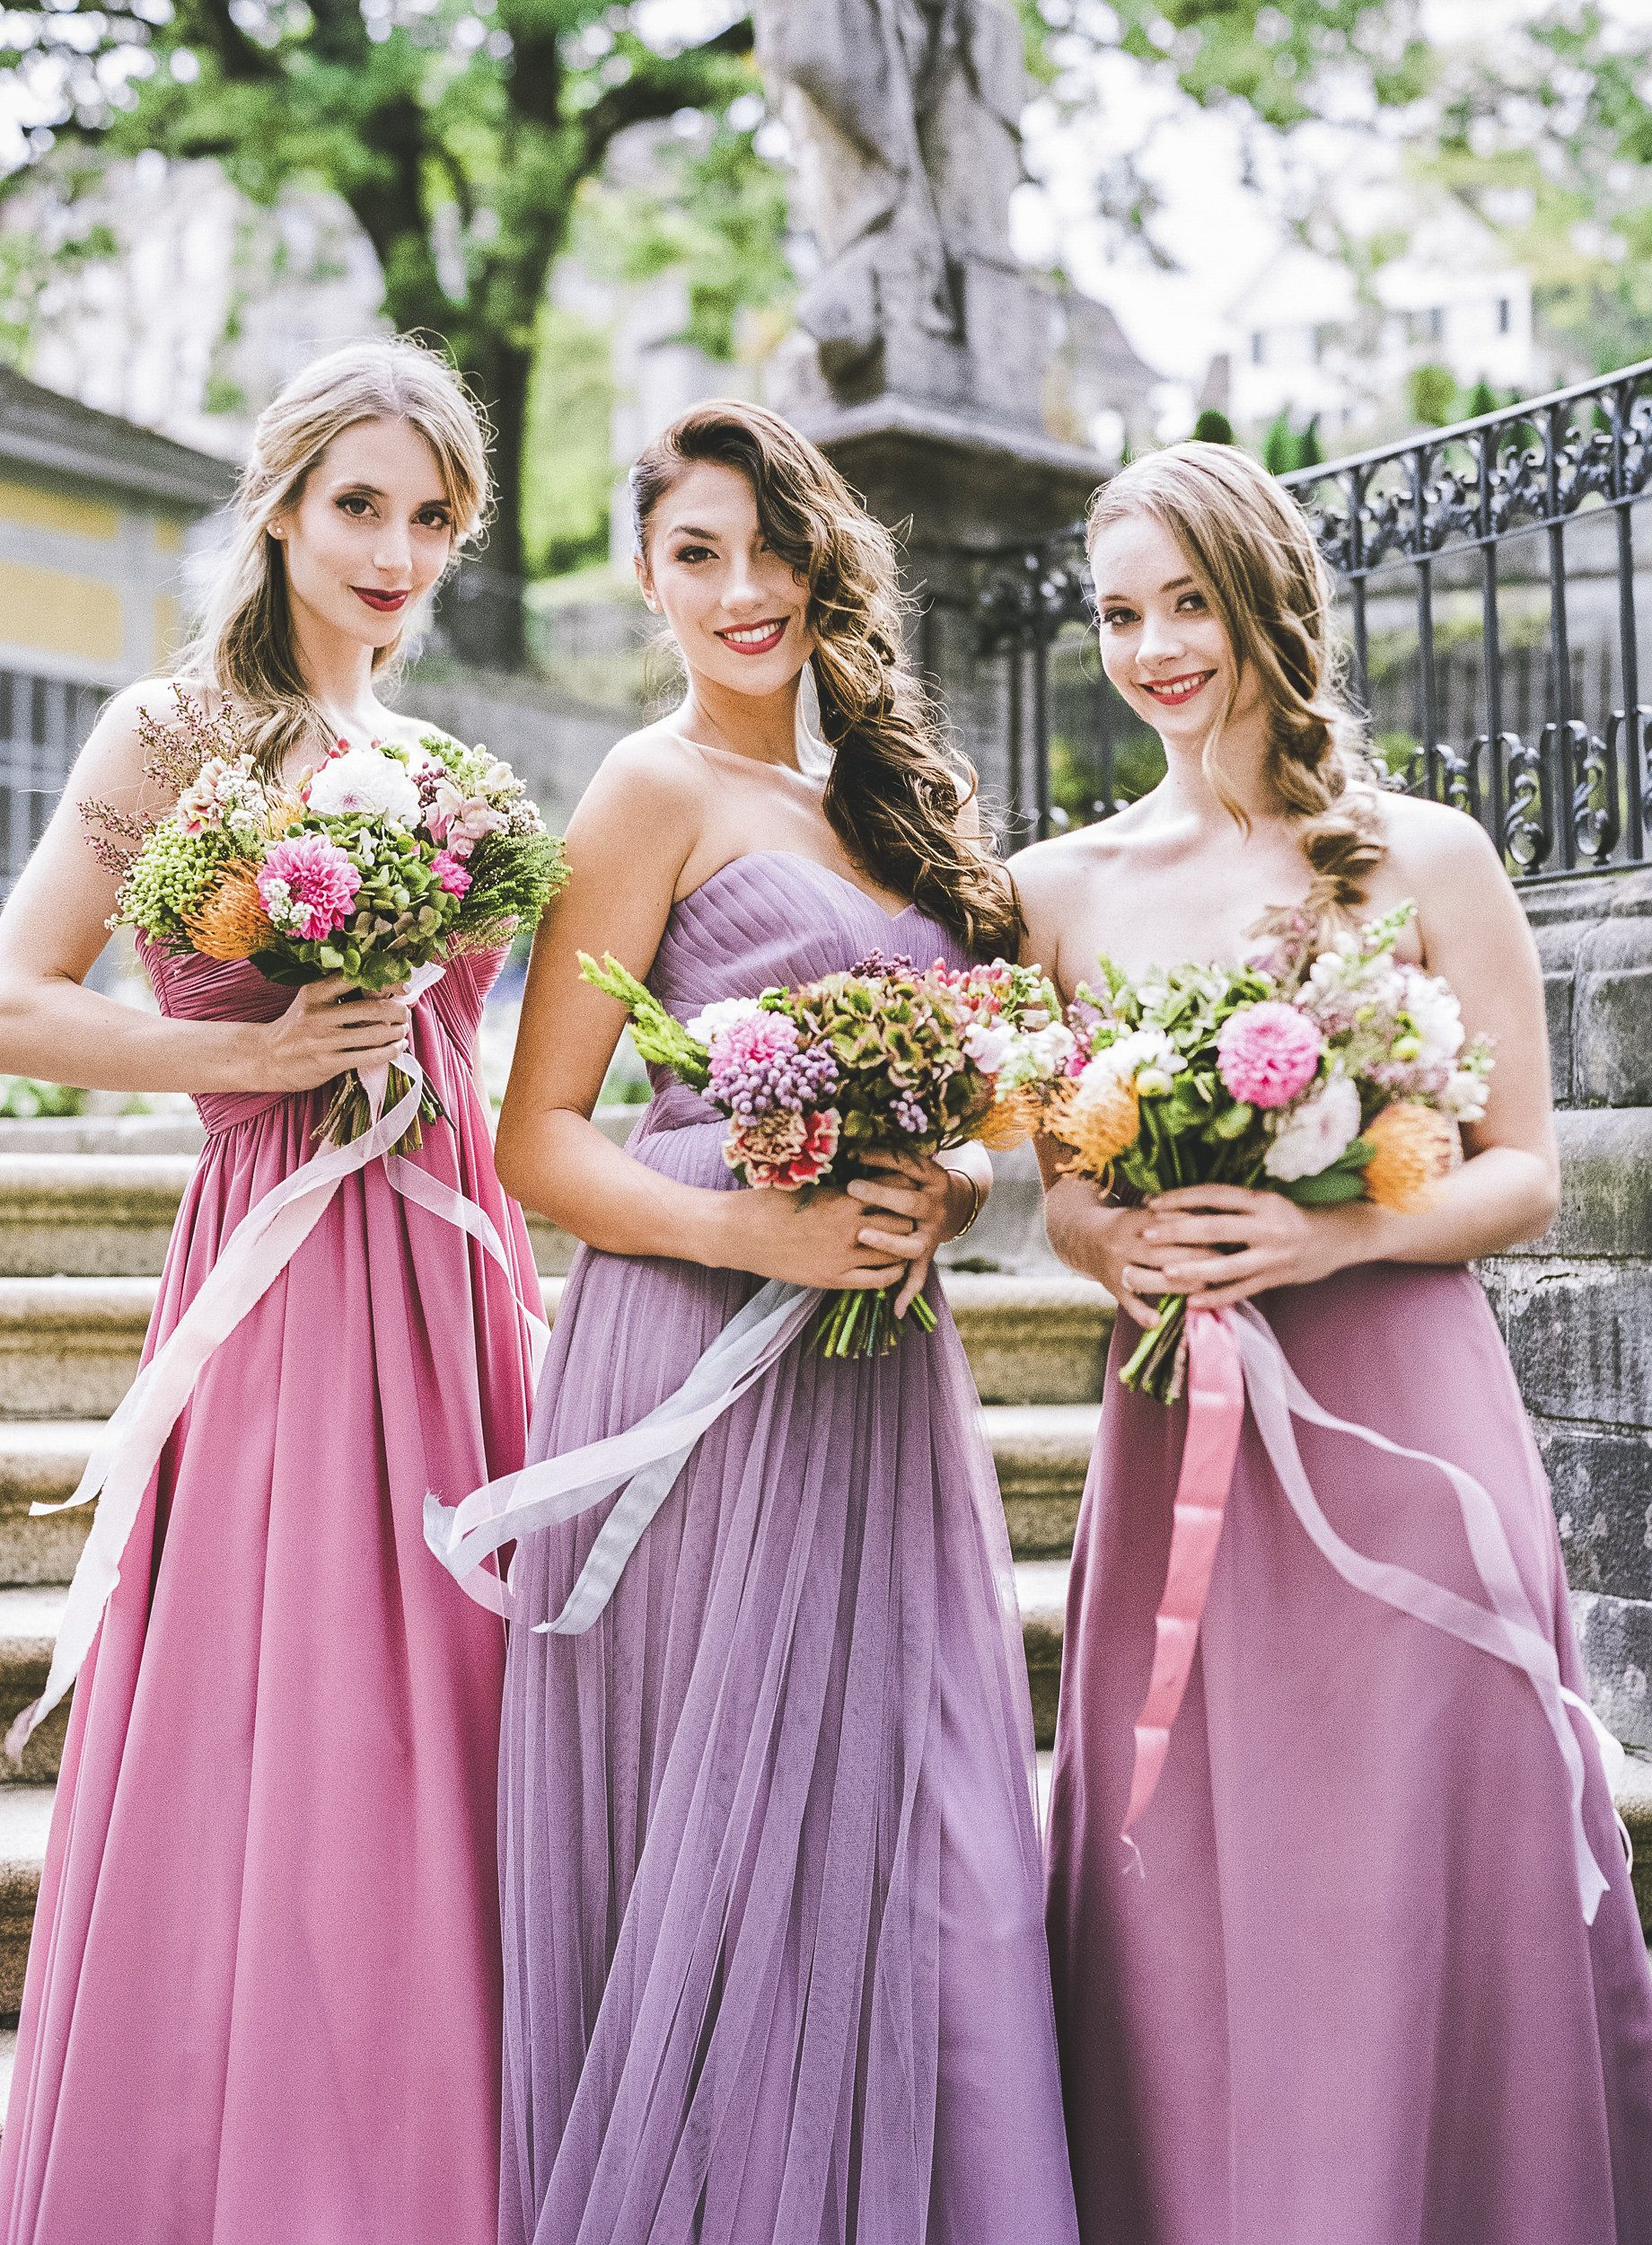 Need More Parties In Your Life How About A Bestie Bridesmaids Party Bridesmaid Bridesmaid Dresses Australia Purple Bridesmaid Dresses [ 2500 x 1840 Pixel ]